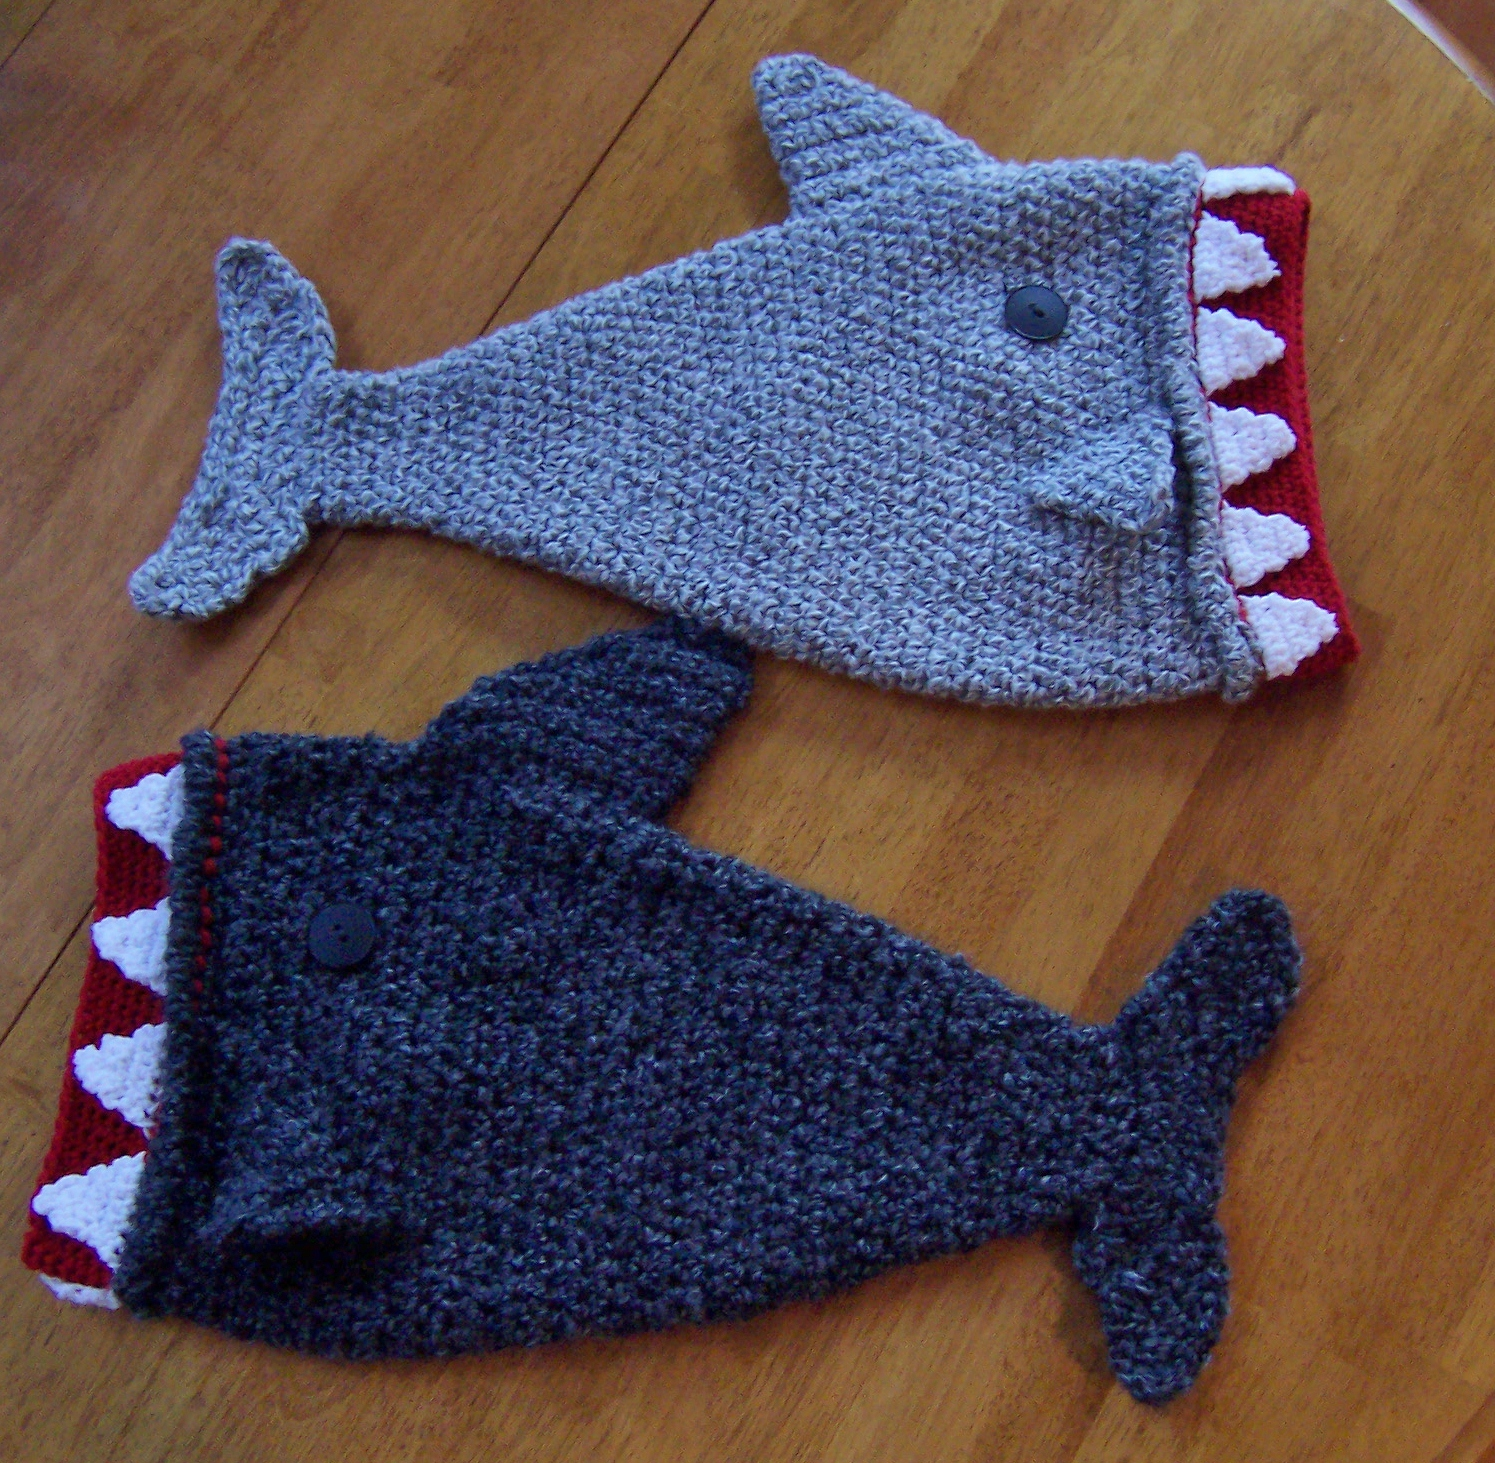 Free Pattern Crochet Shark Blanket : Crochet Patterns Crochet By Darleen Hopkins